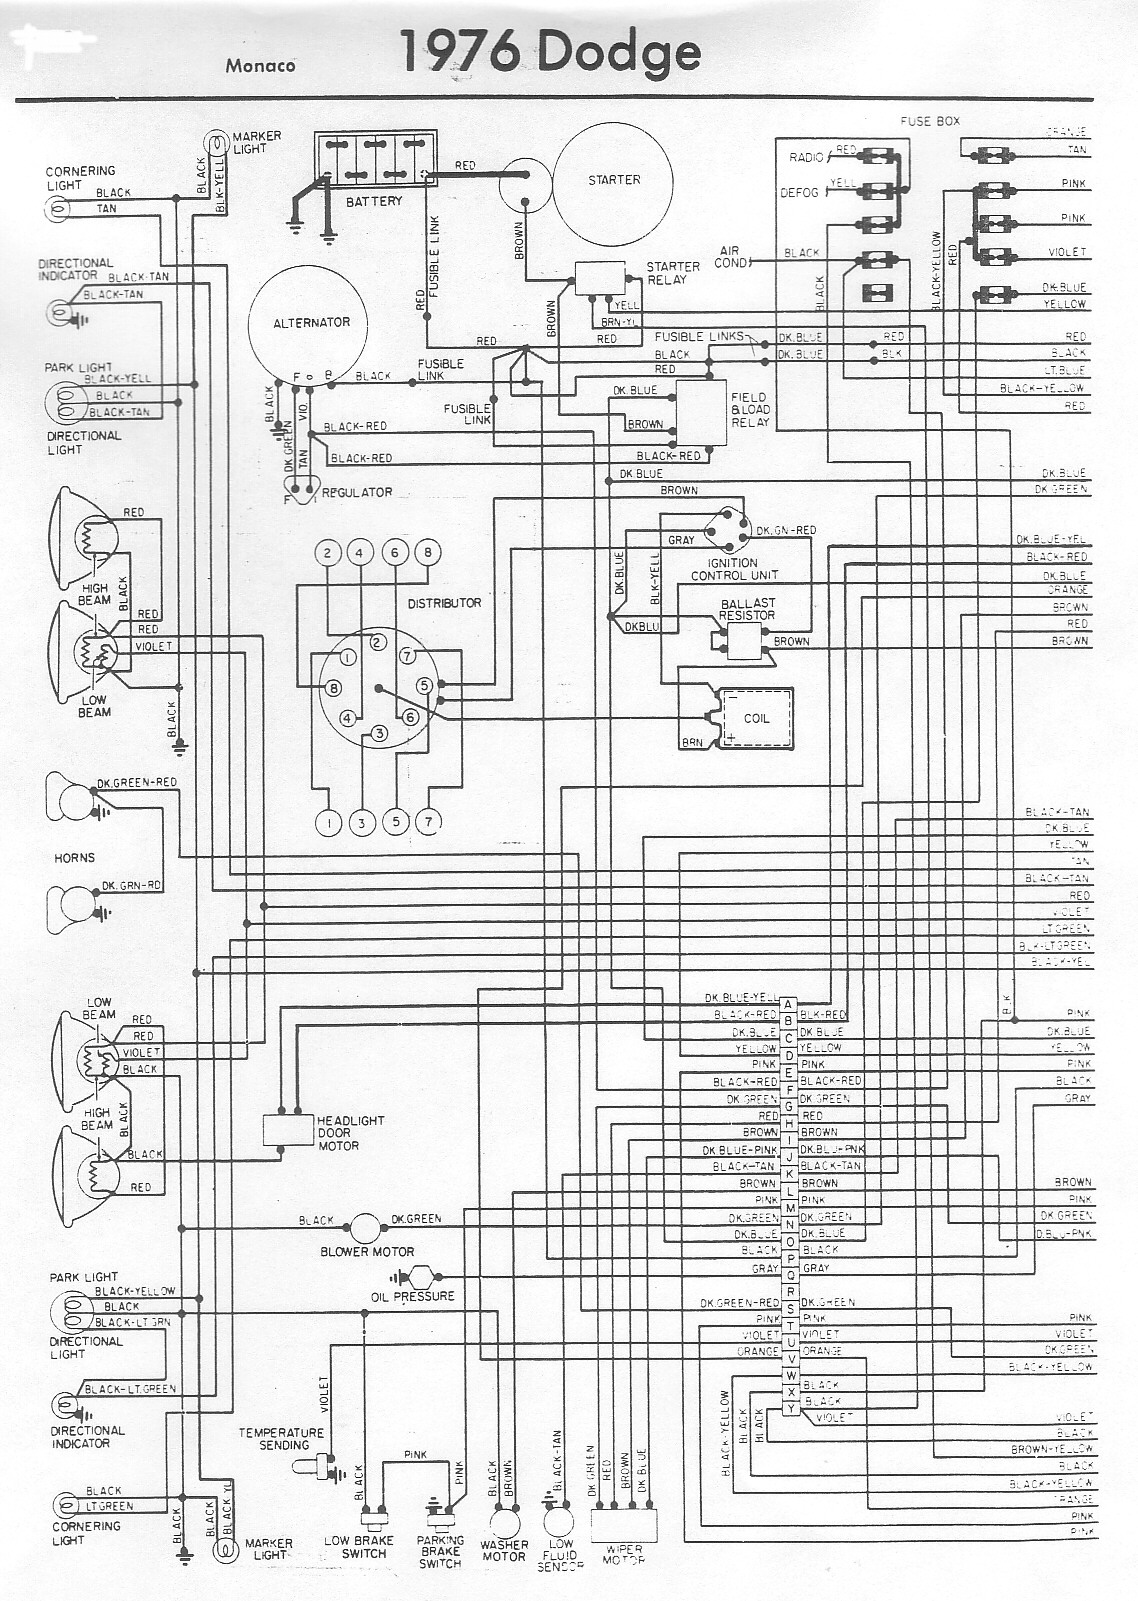 1985 Dodge Van Wiring Diagram Diagrams B250 Free Fuse Box U2022 For 2000 Dakota